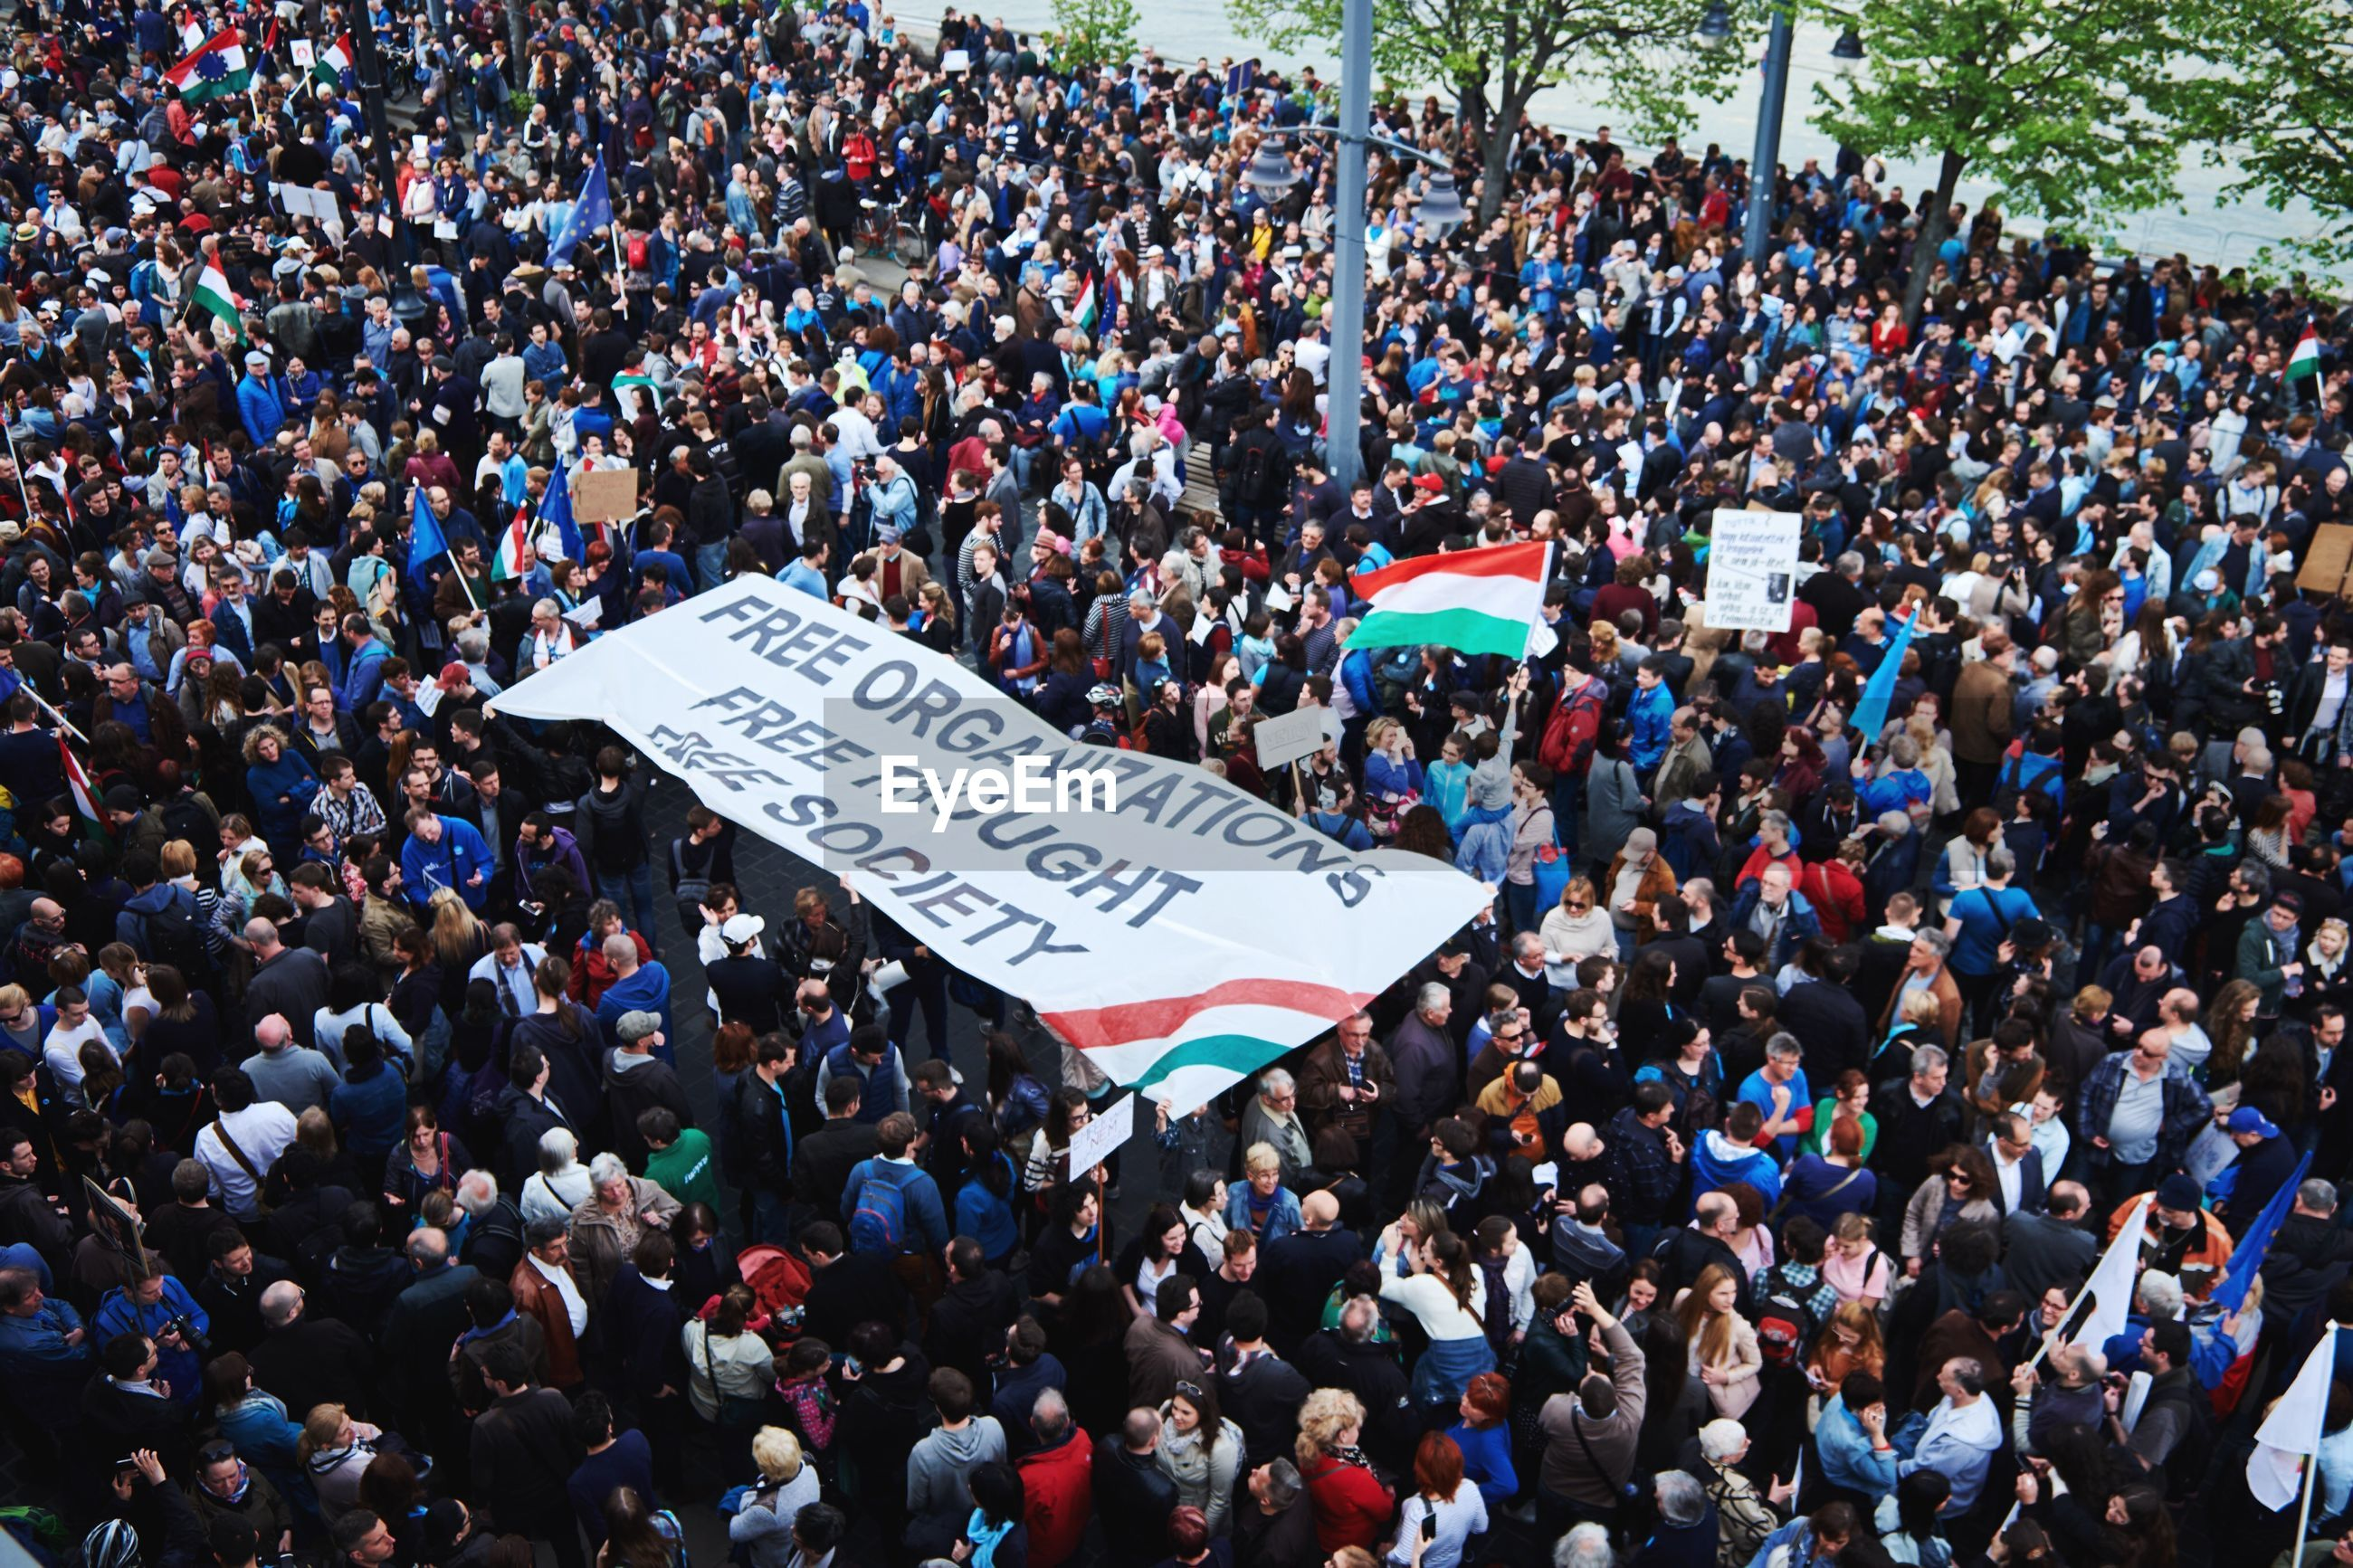 High angle view of crowd with banner during protest rally